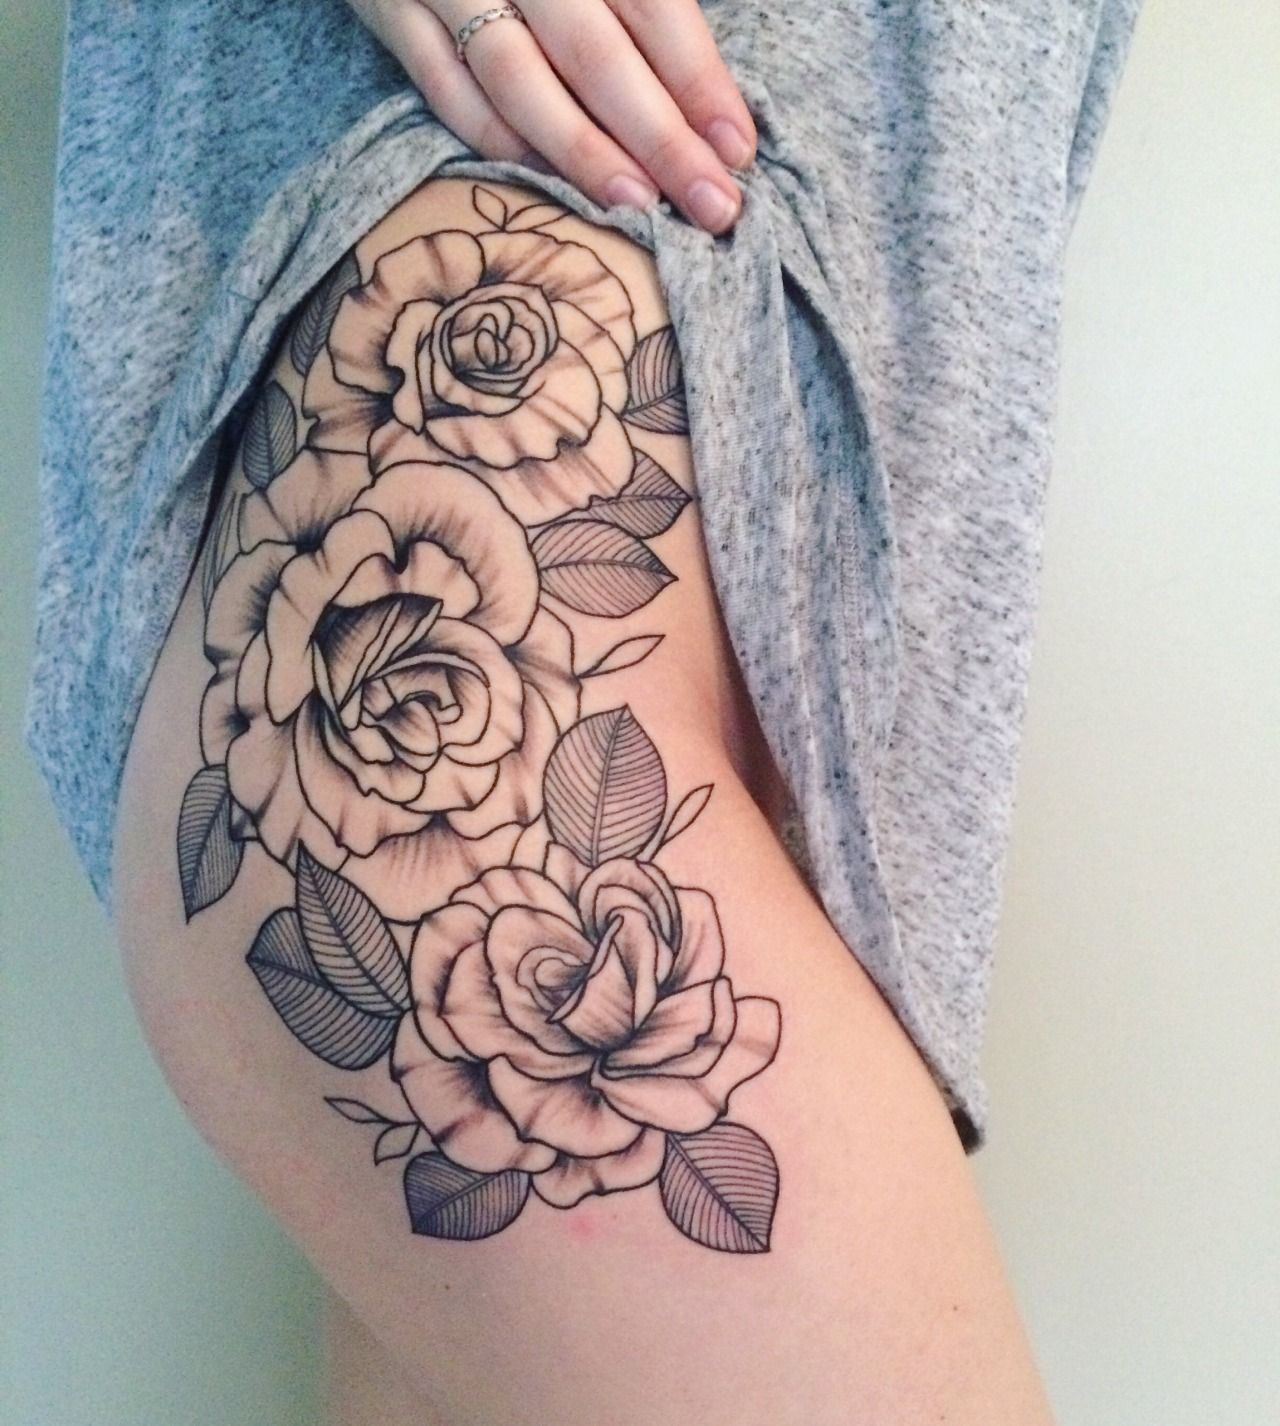 Rose thigh tattoo roses on my hipthigh tattoous and piercings